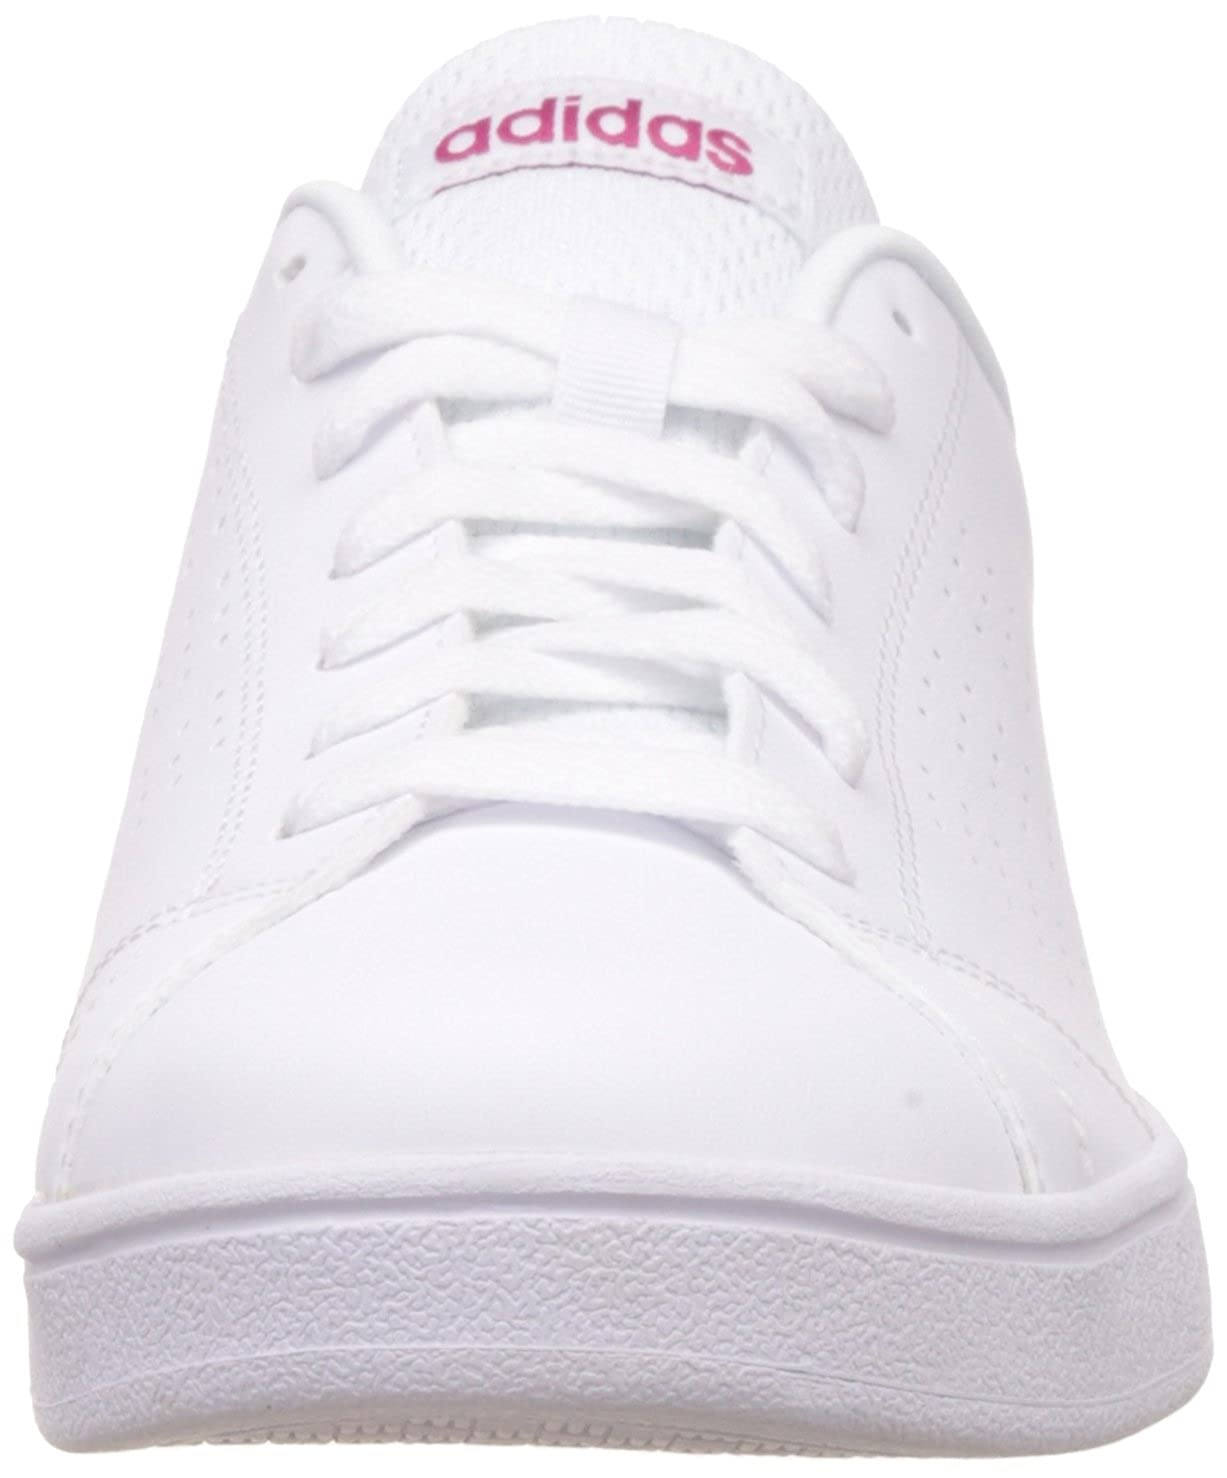 outlet store 2f99a accb2 Adidas B74574 Slipper White VS Advantage 42 White  Amazon.ca  Shoes    Handbags